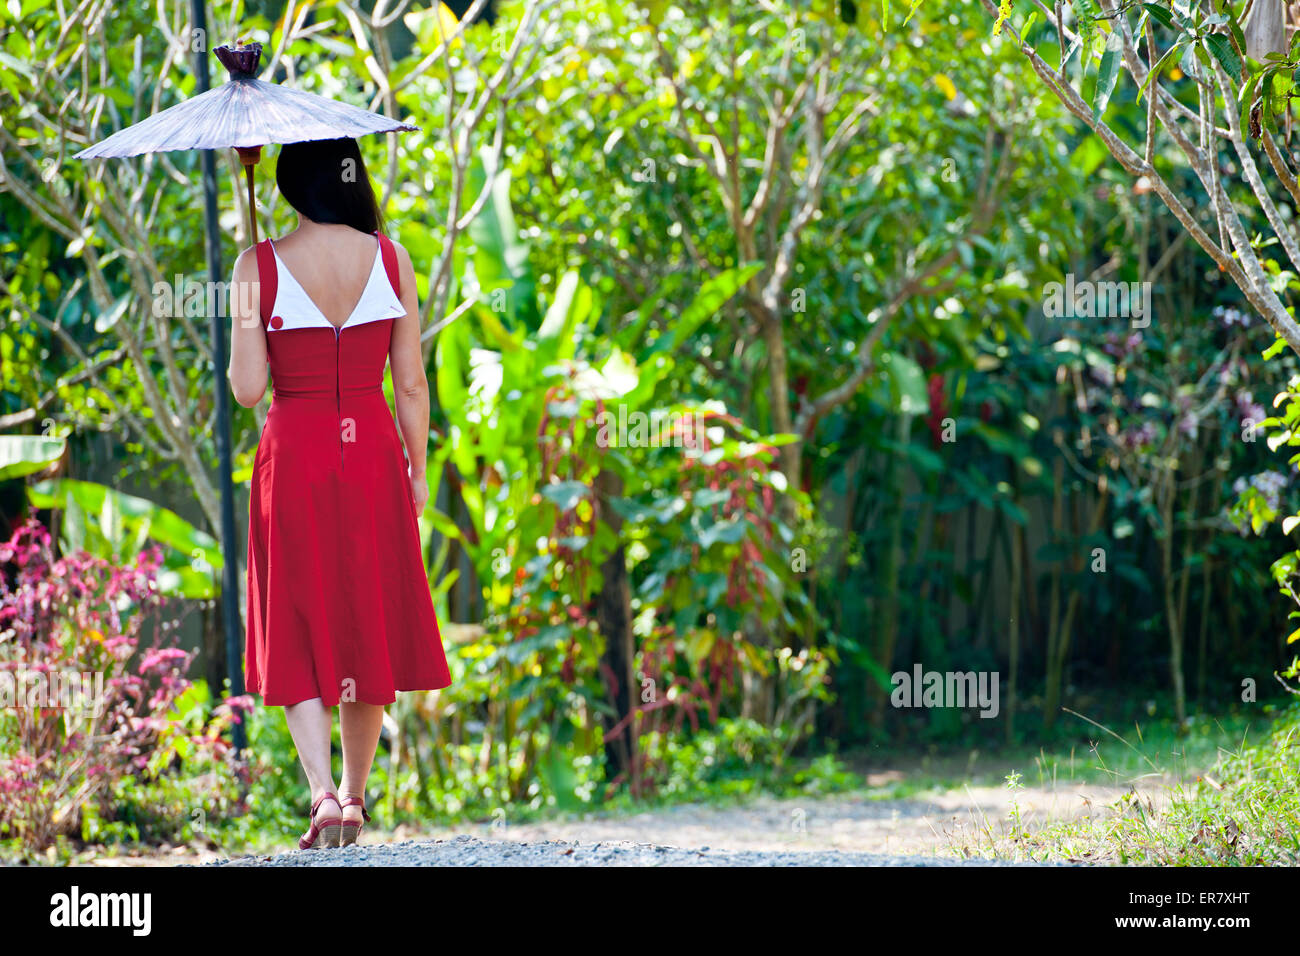 Beautiful Woman In Red Dress Walking Through A Thai Garden Stock